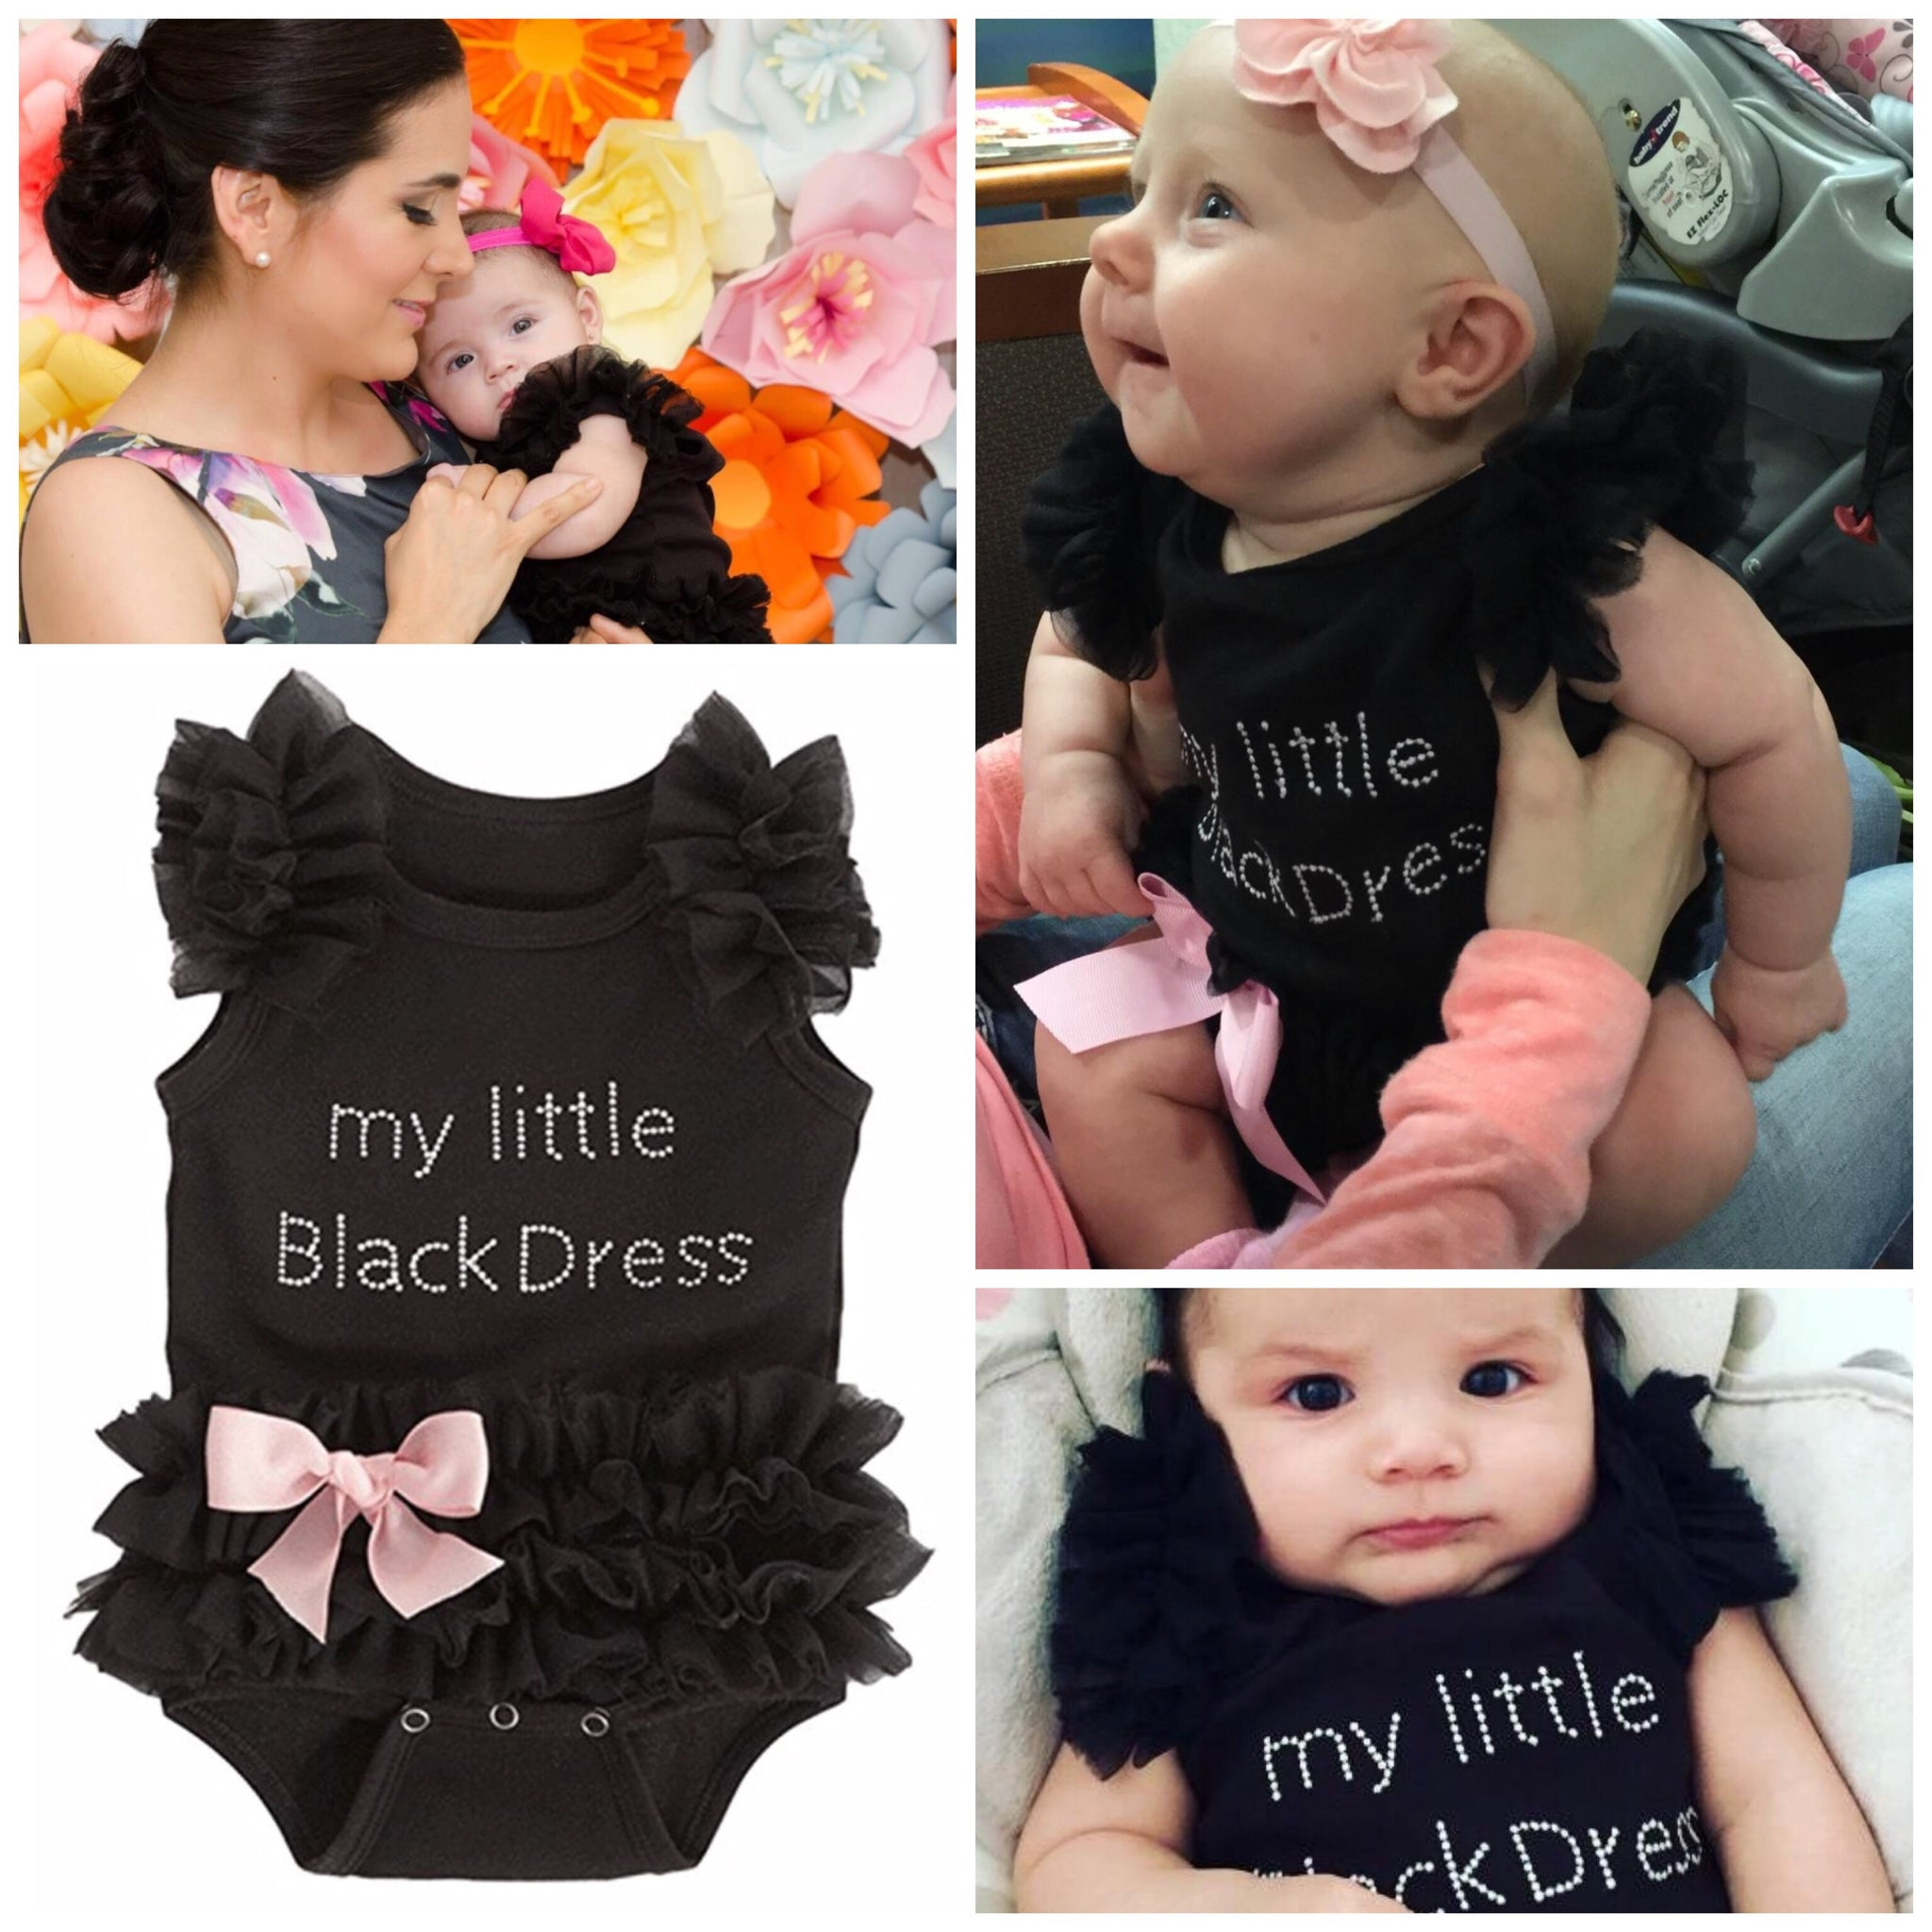 7e4be11f5 Baby Girls Embroidered Little Black Dress Bodysuit – Uylee s Boutique